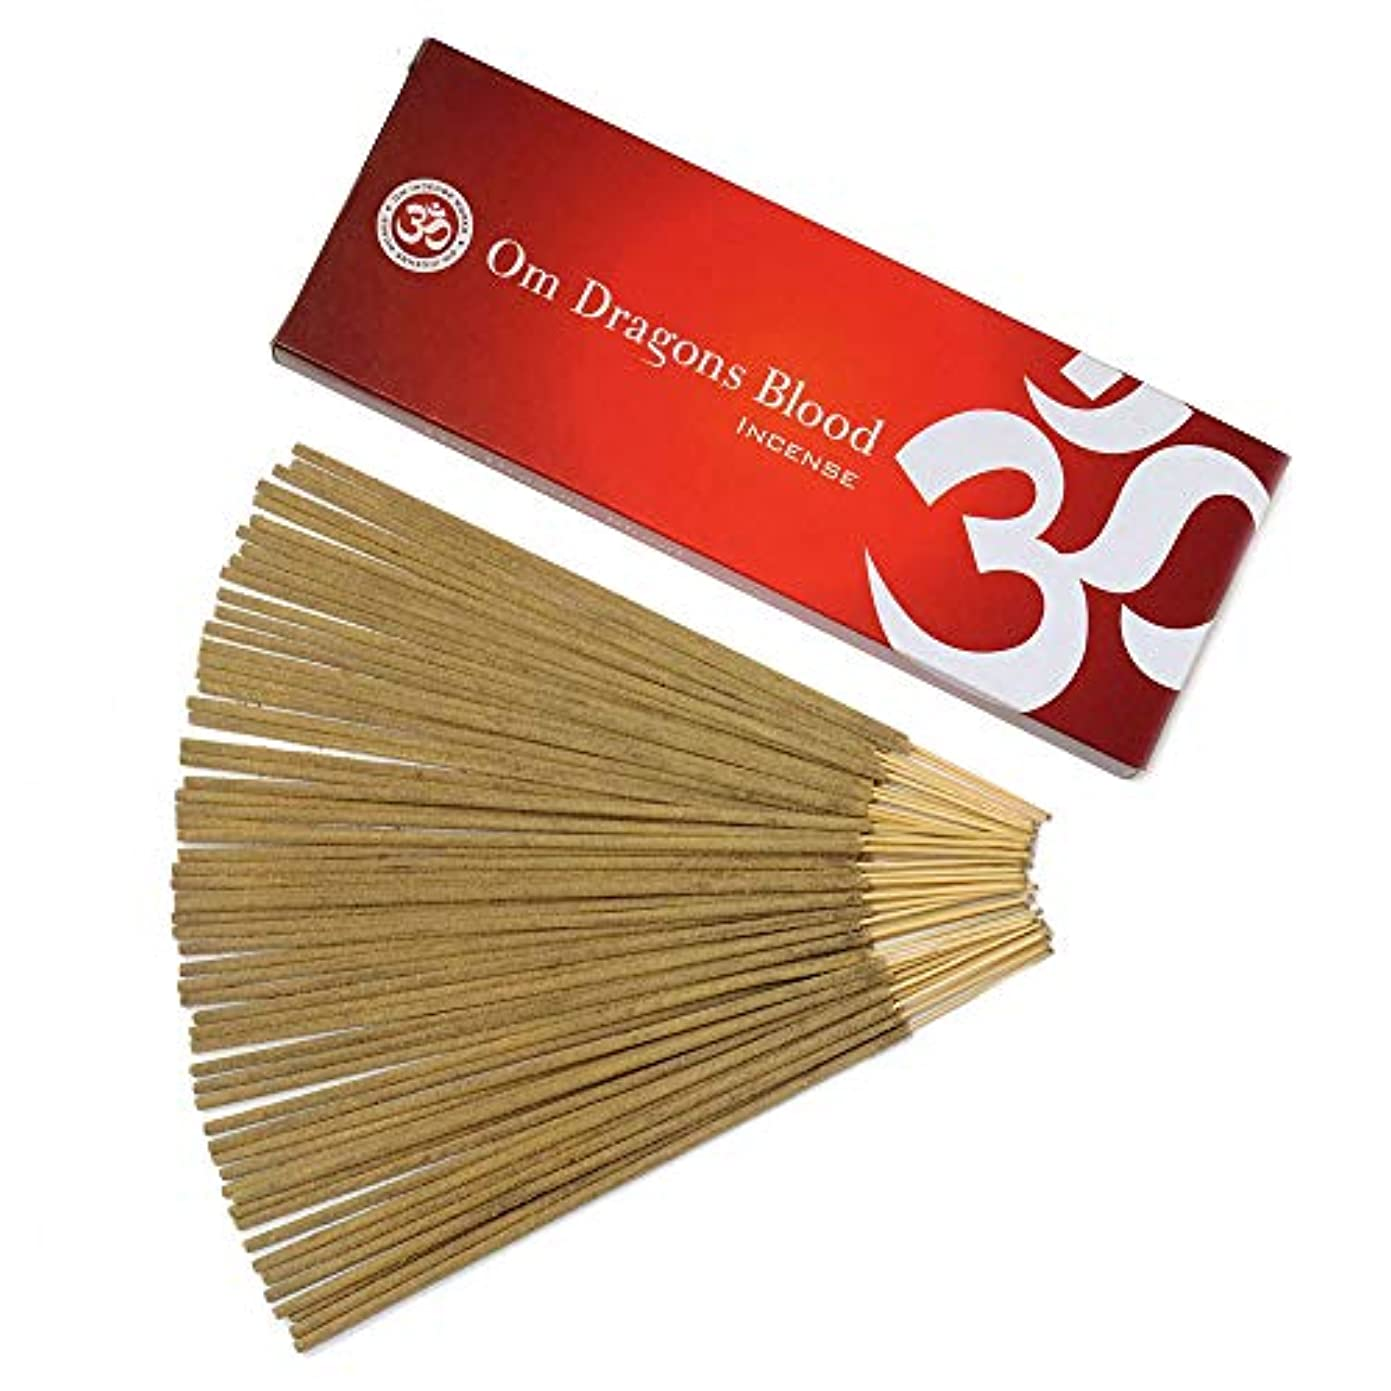 浮くスノーケル負Om Incense Works Natural Fragrance Incense Sticks 100グラム 709733007088